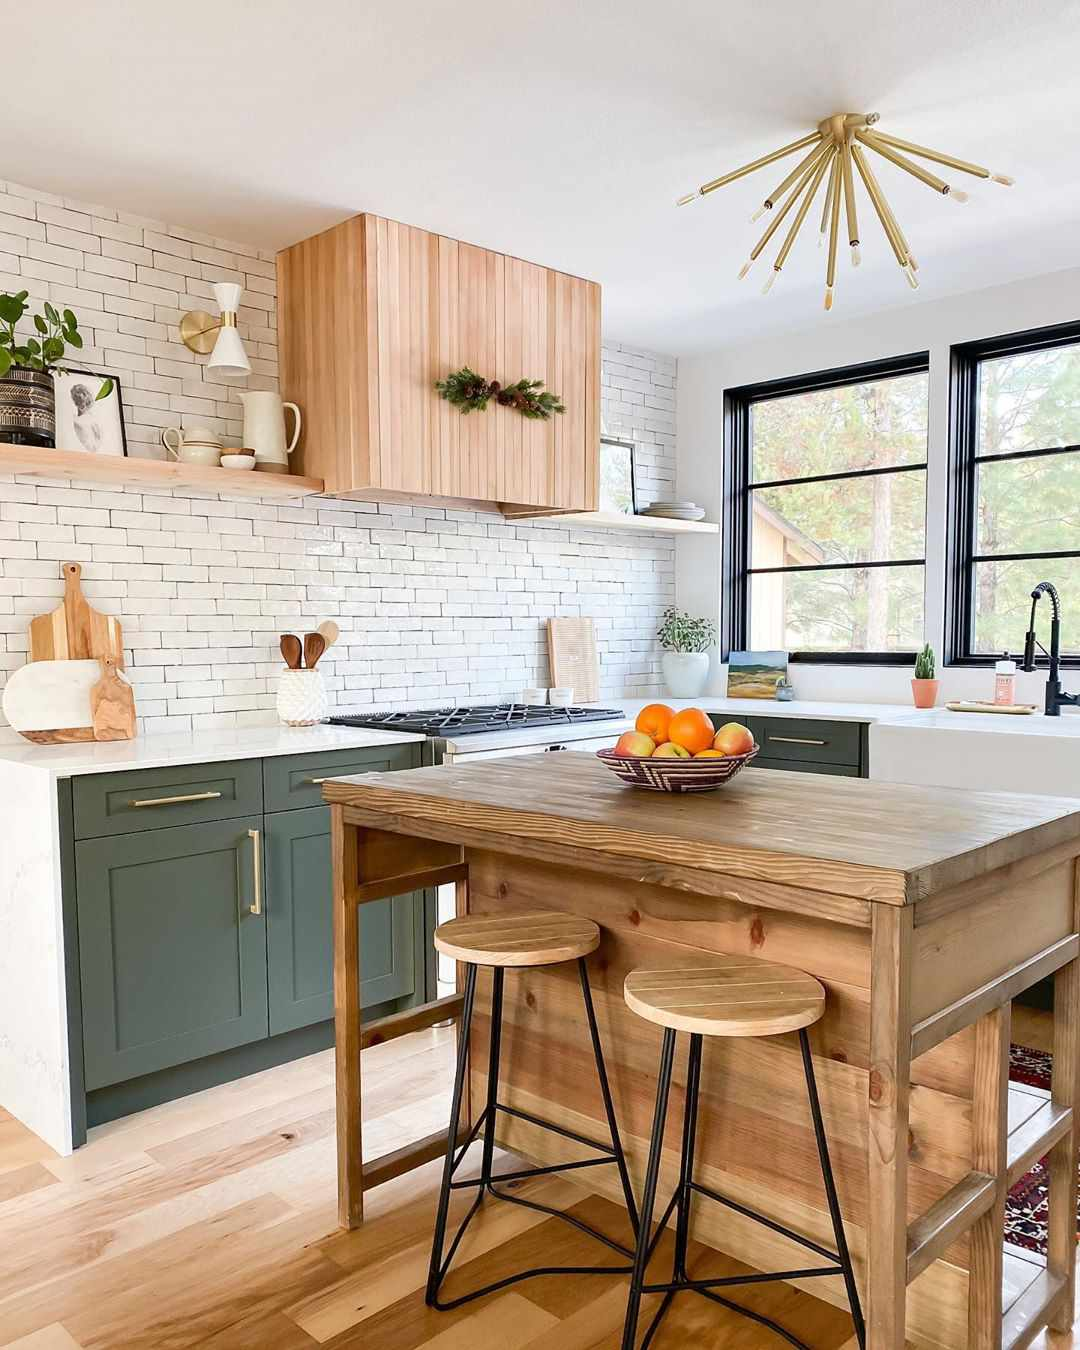 Green kitchen with wooden island